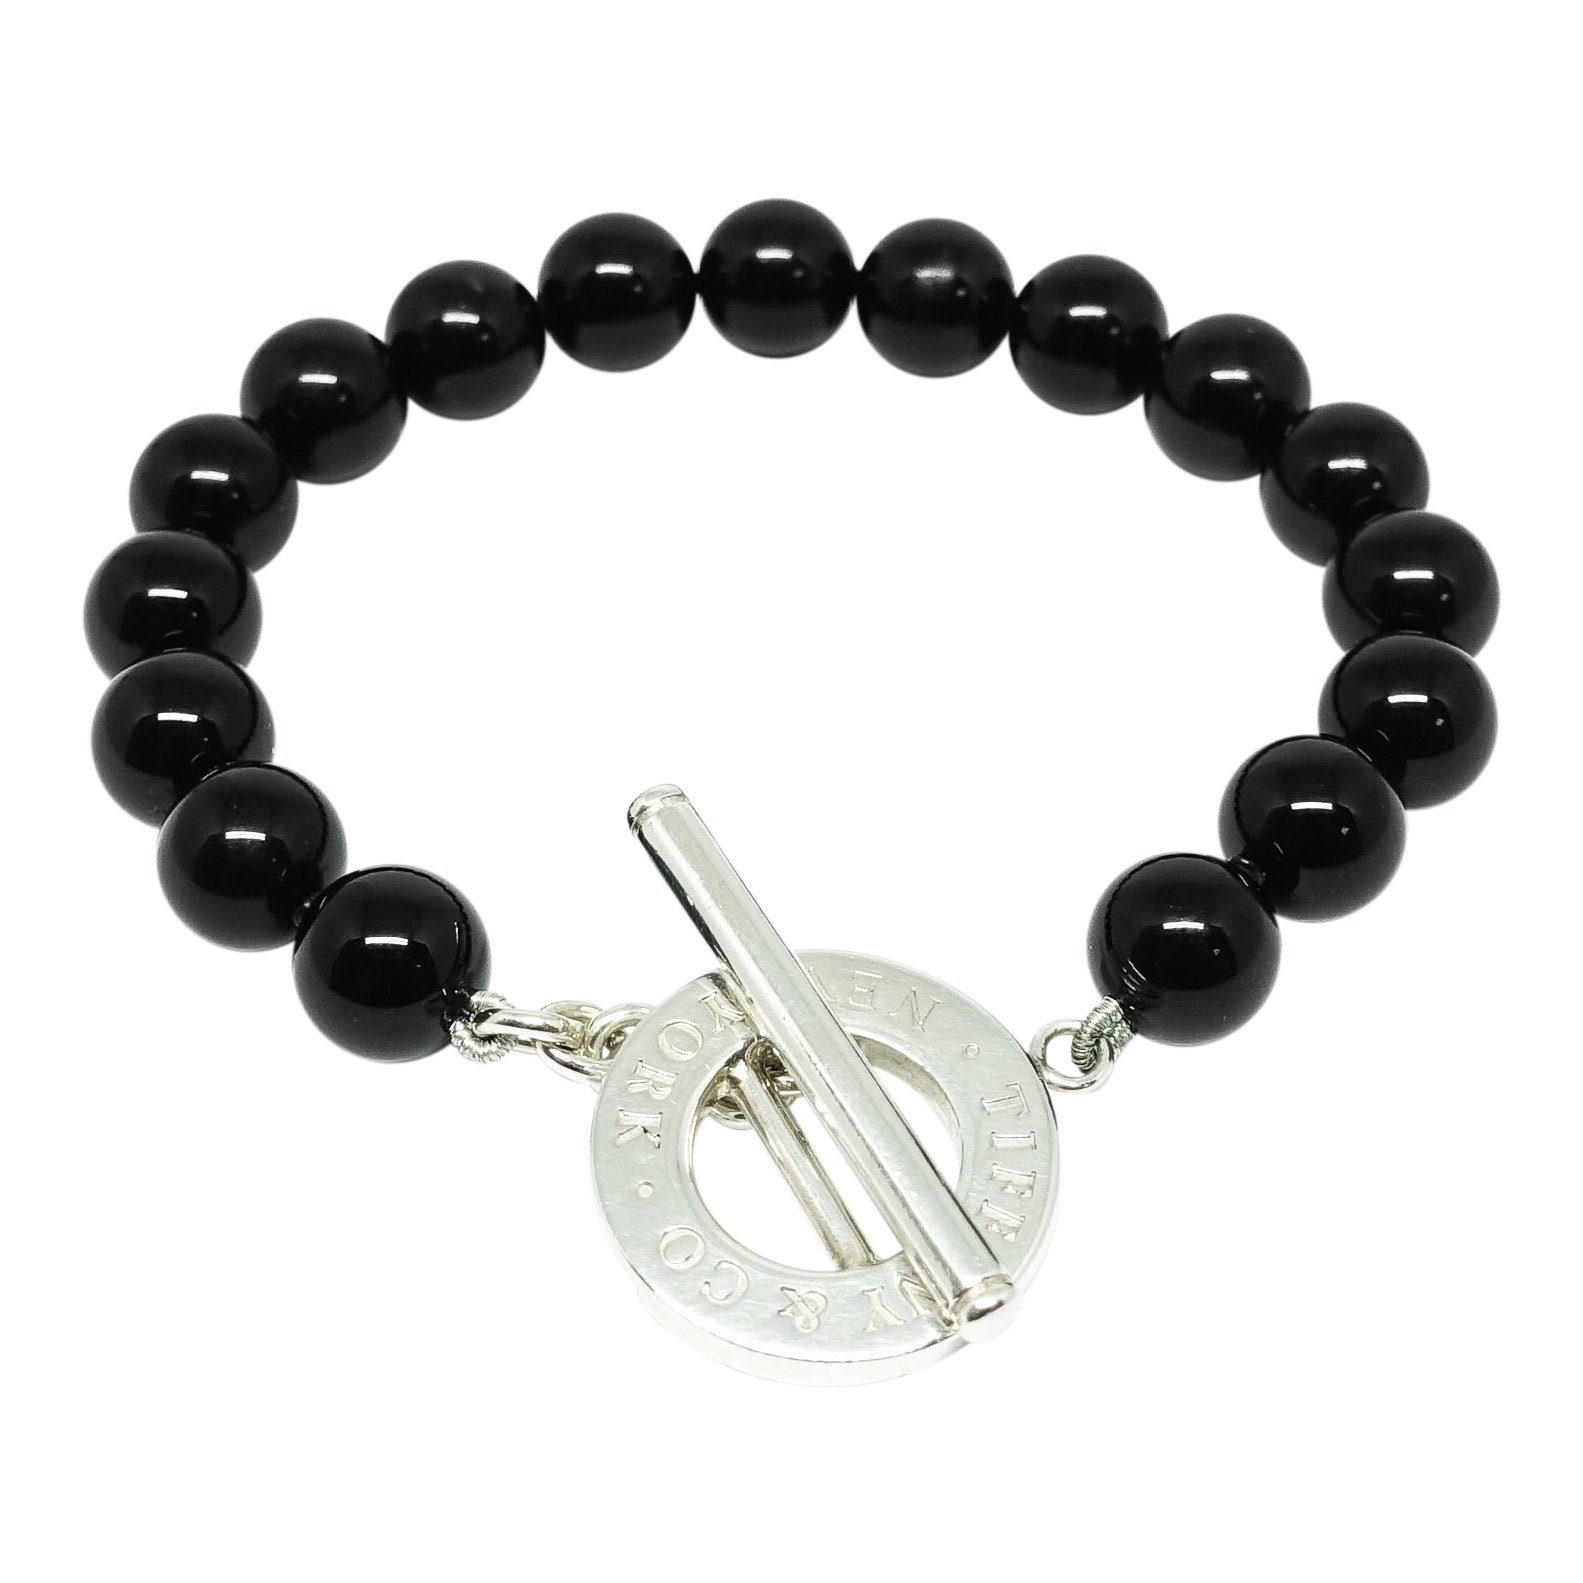 a69c4d4c78c70 Tiffany & Co. Black Onyx Bead Bracelet with Sterling Silver Toggle Clasp